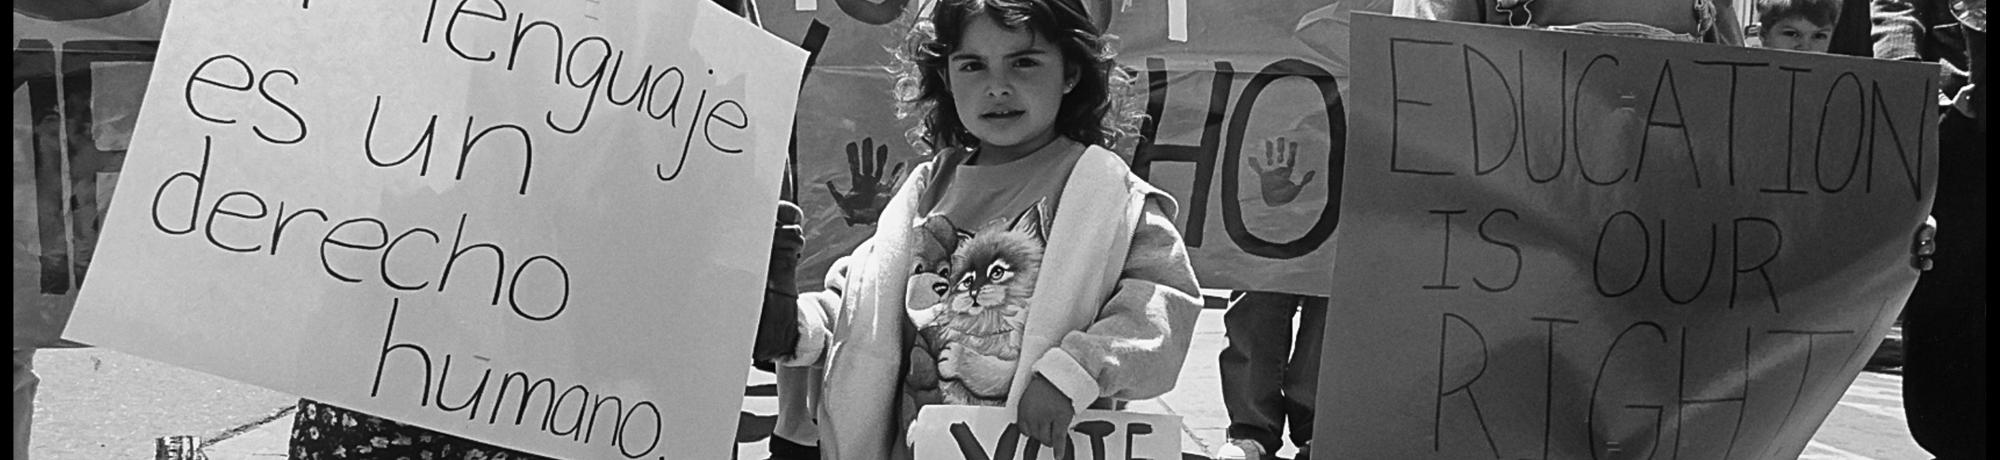 "black-and-white photo of children protesting prop 227 ""Language is a human right"" sign"